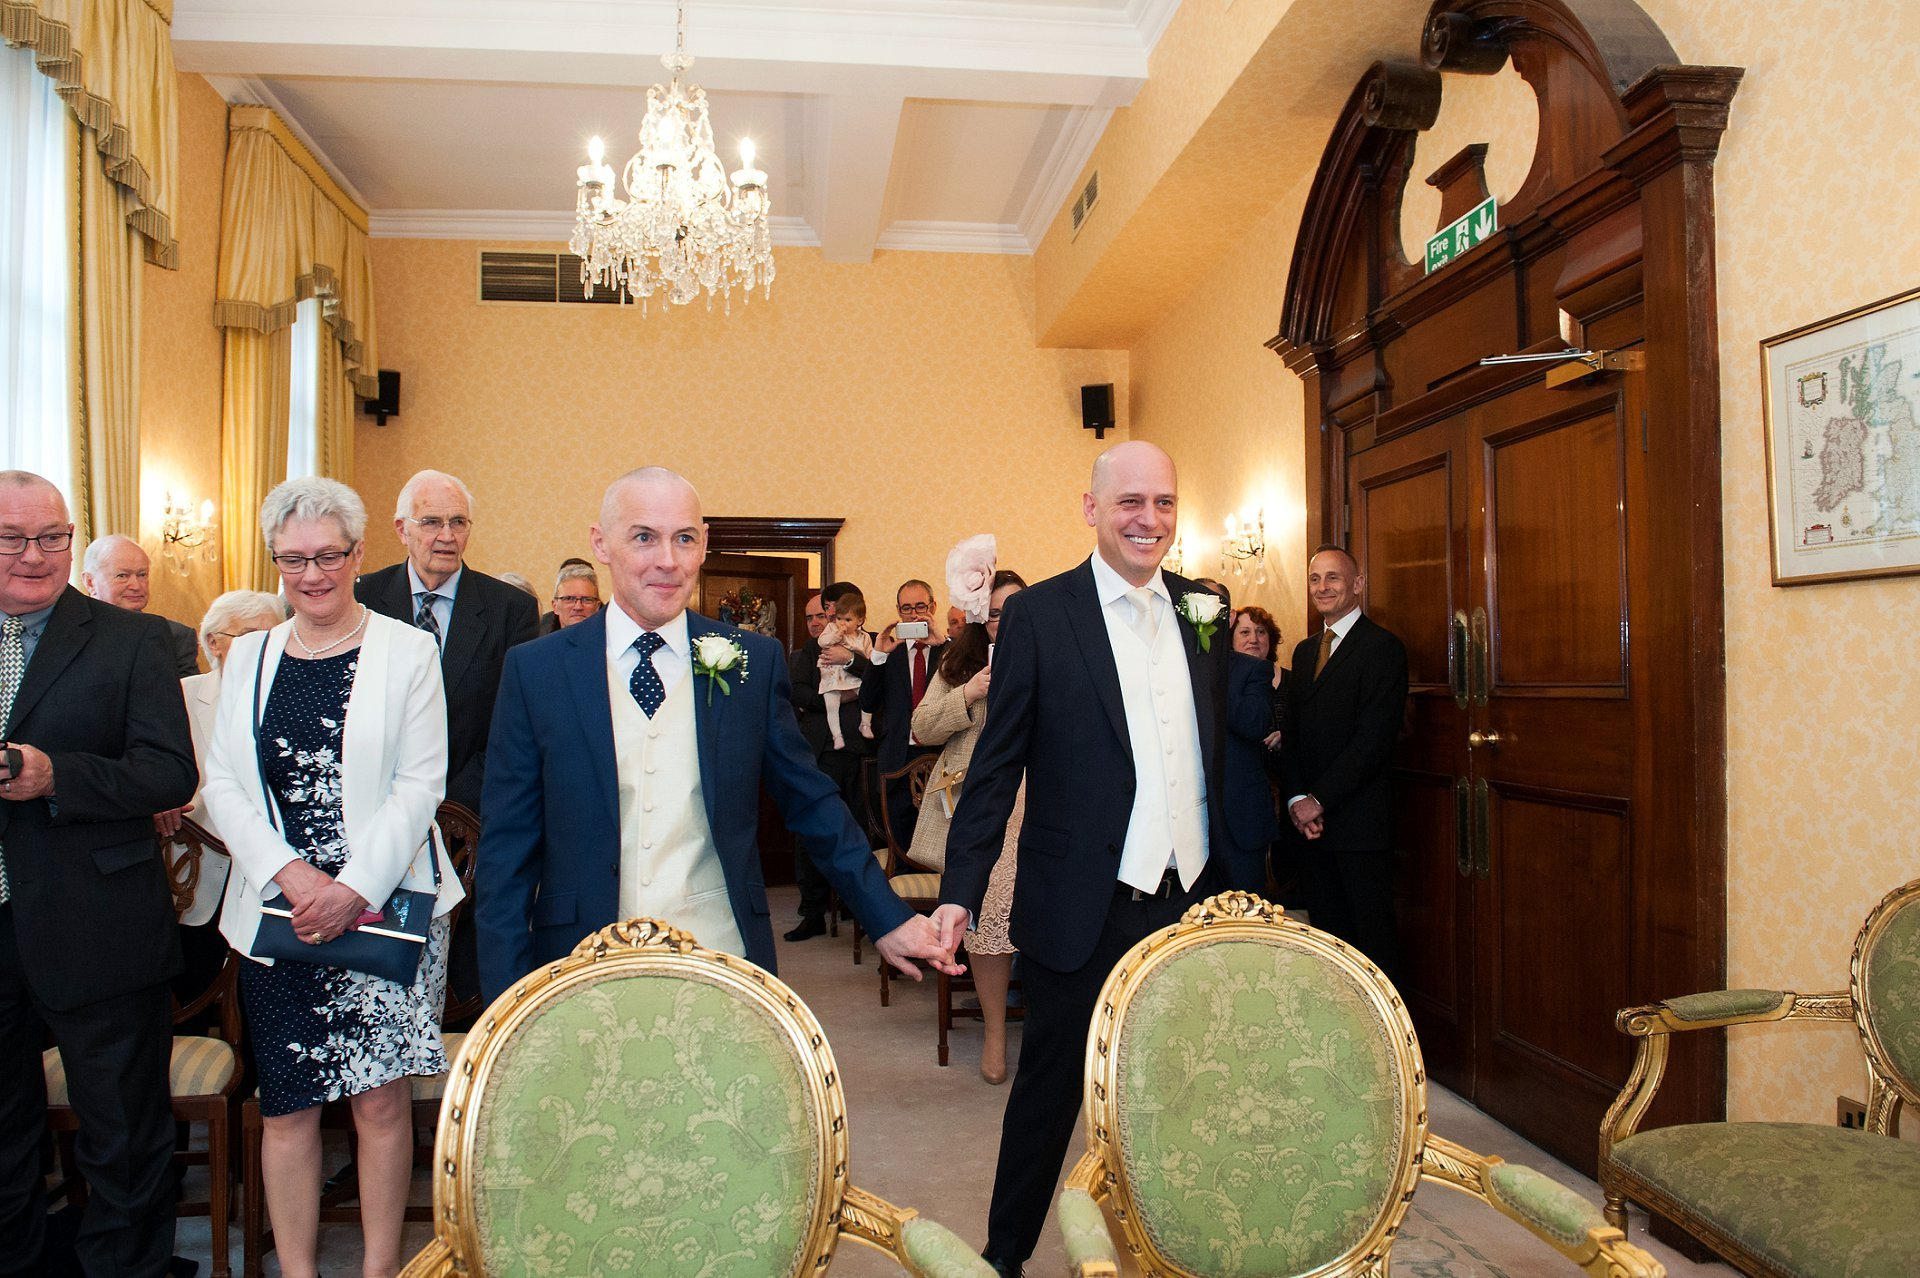 George & Jose walk into the Brydon Room together for their Chelsea Reigstry Office wedding